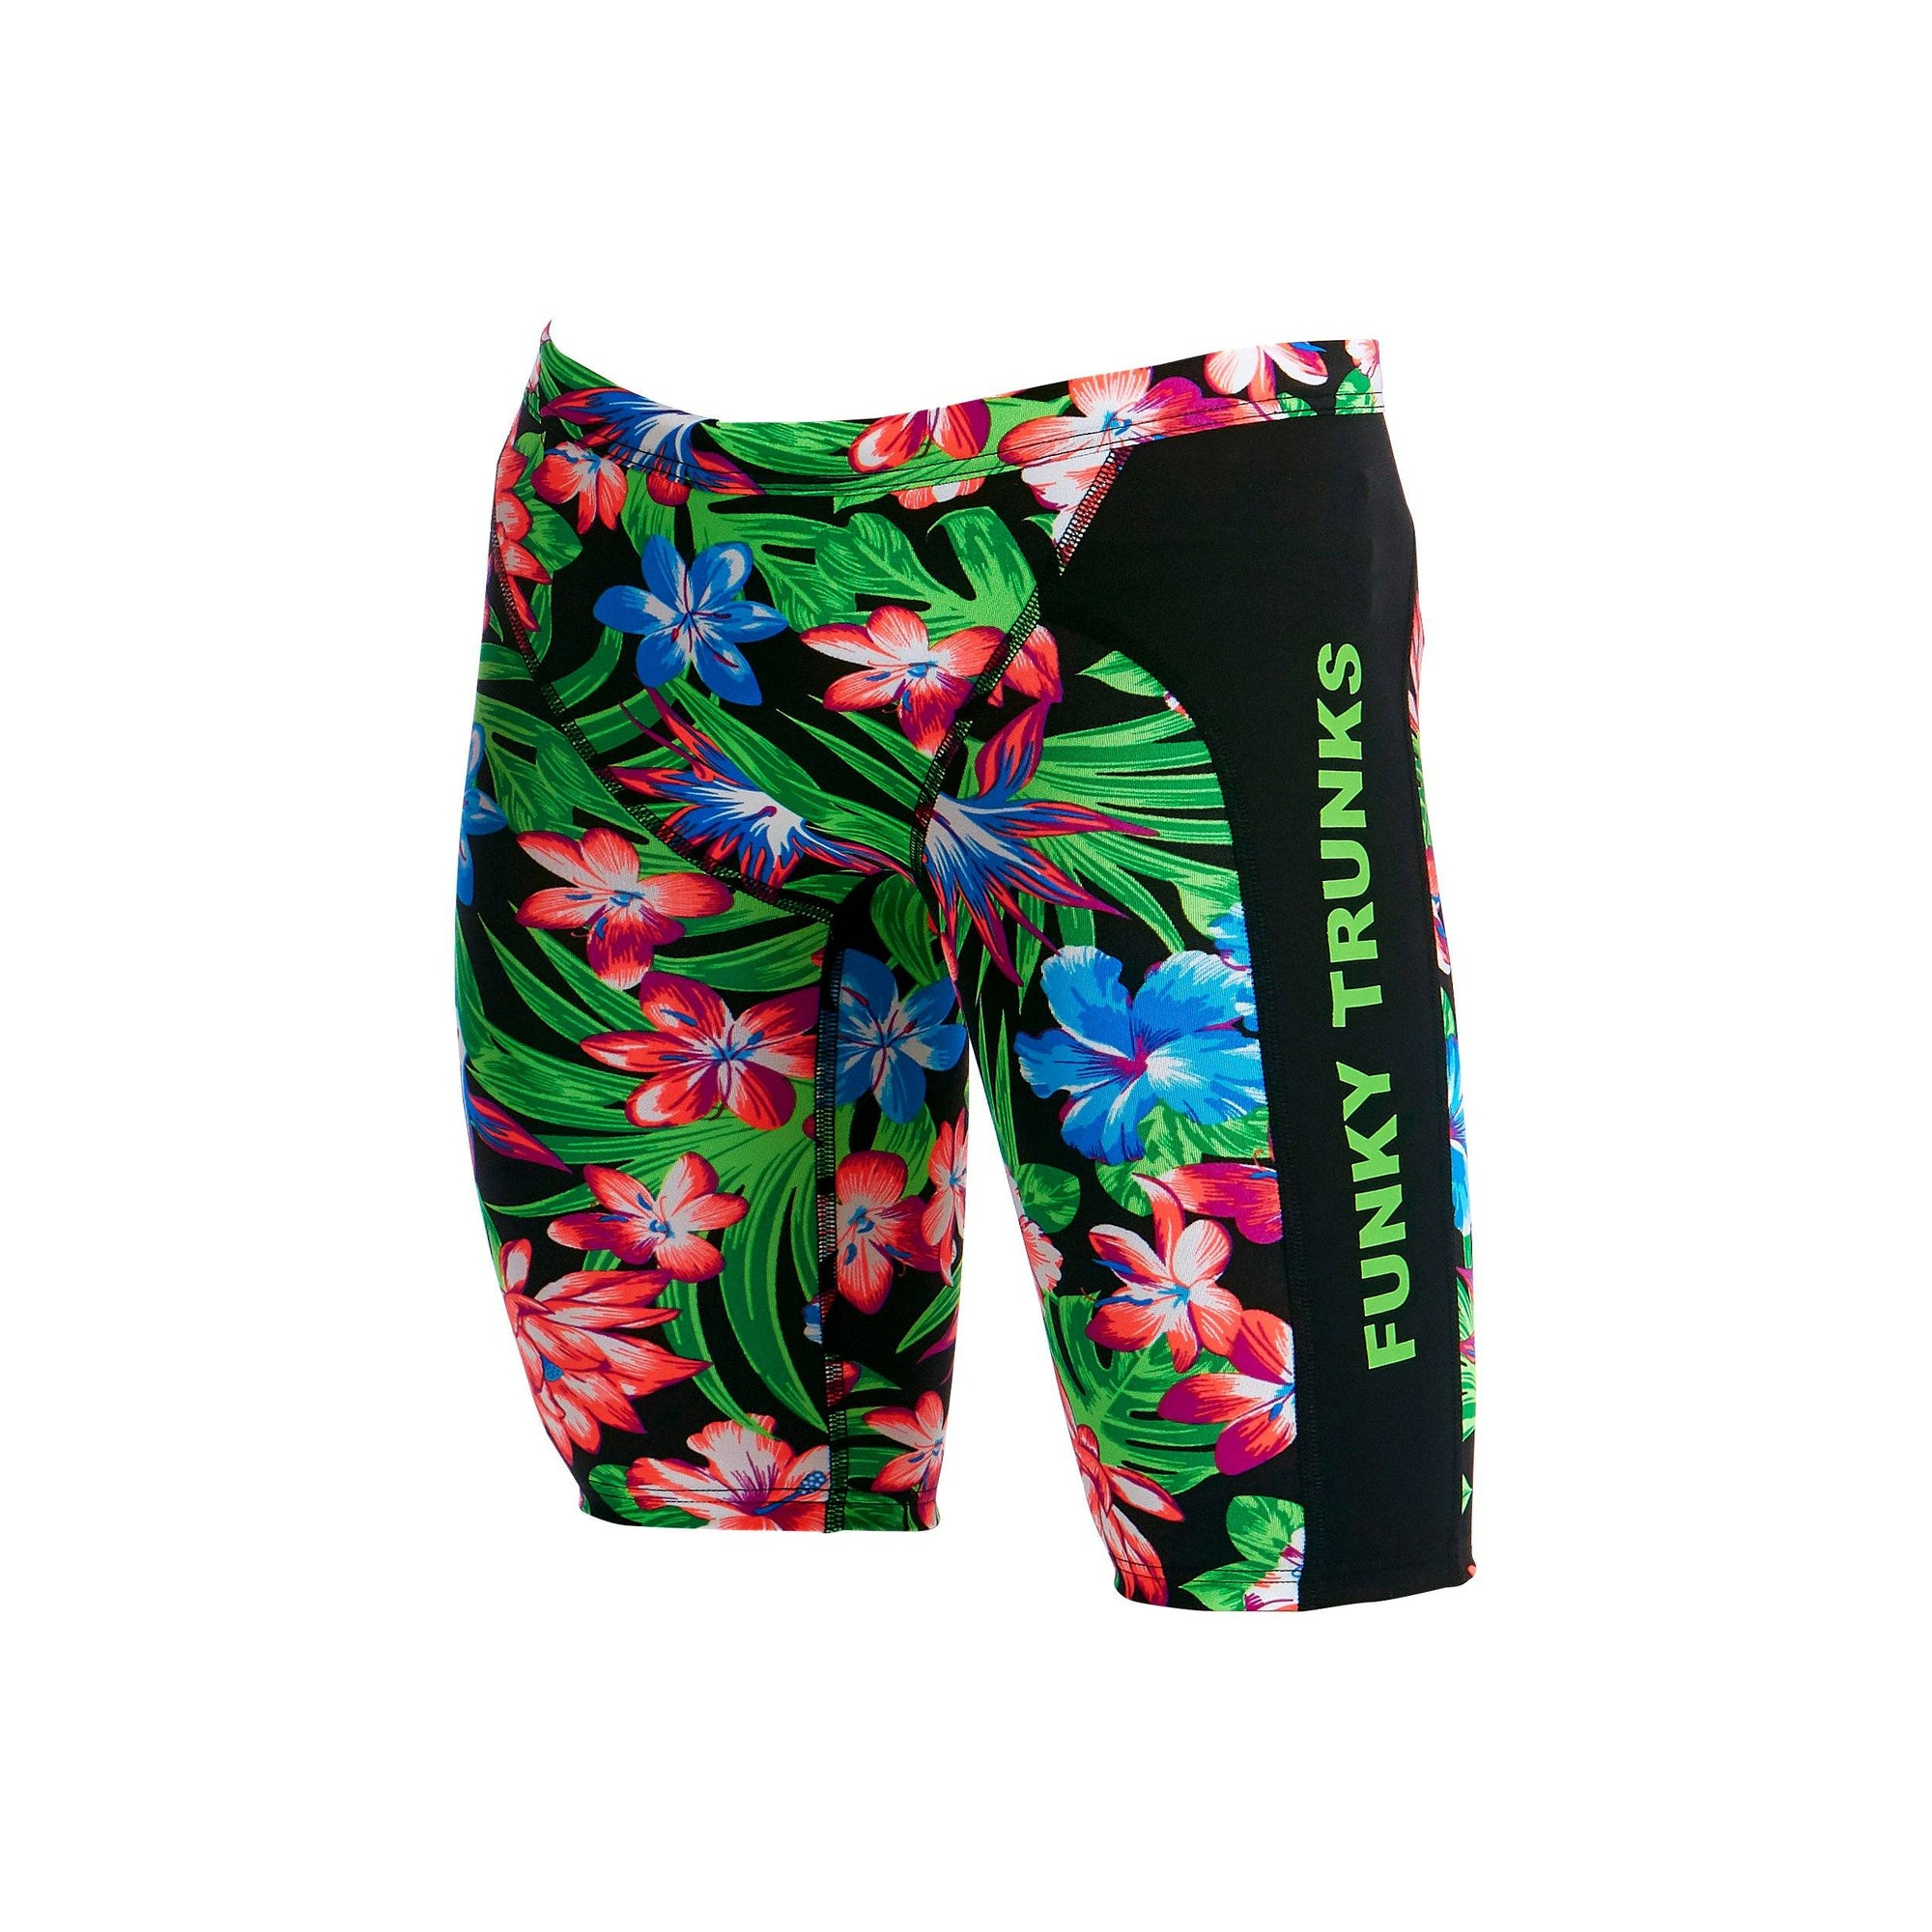 Tropic Rocket Training Jammers BOYS SWIMWEAR FUNKY TRUNKS